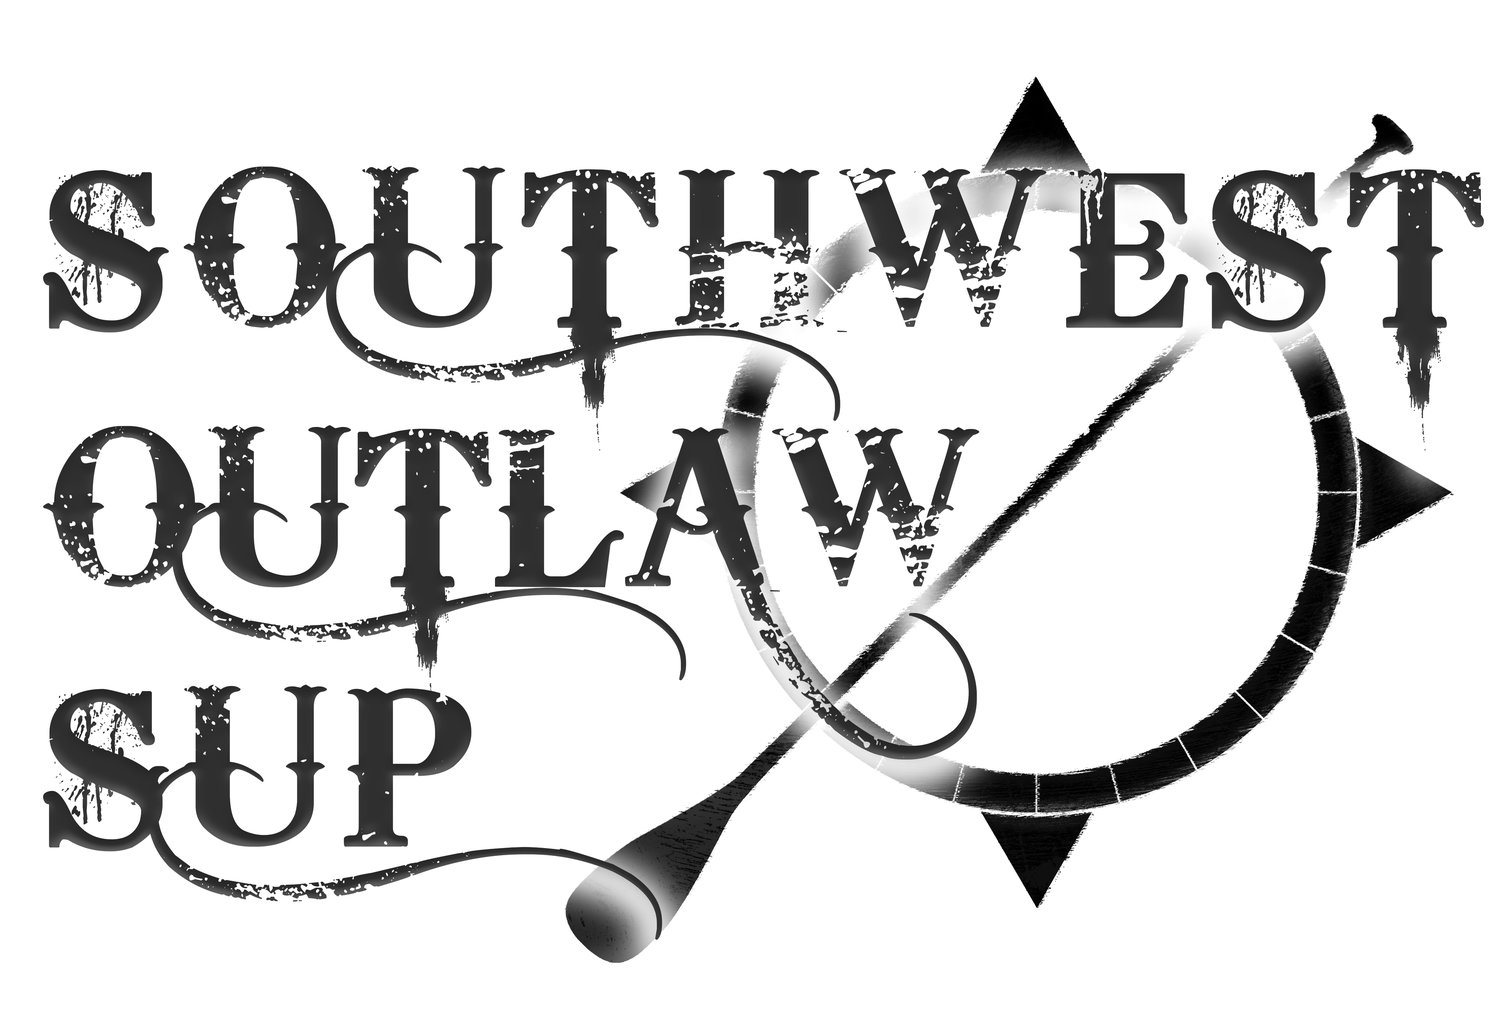 Southwest Outlaw Sup